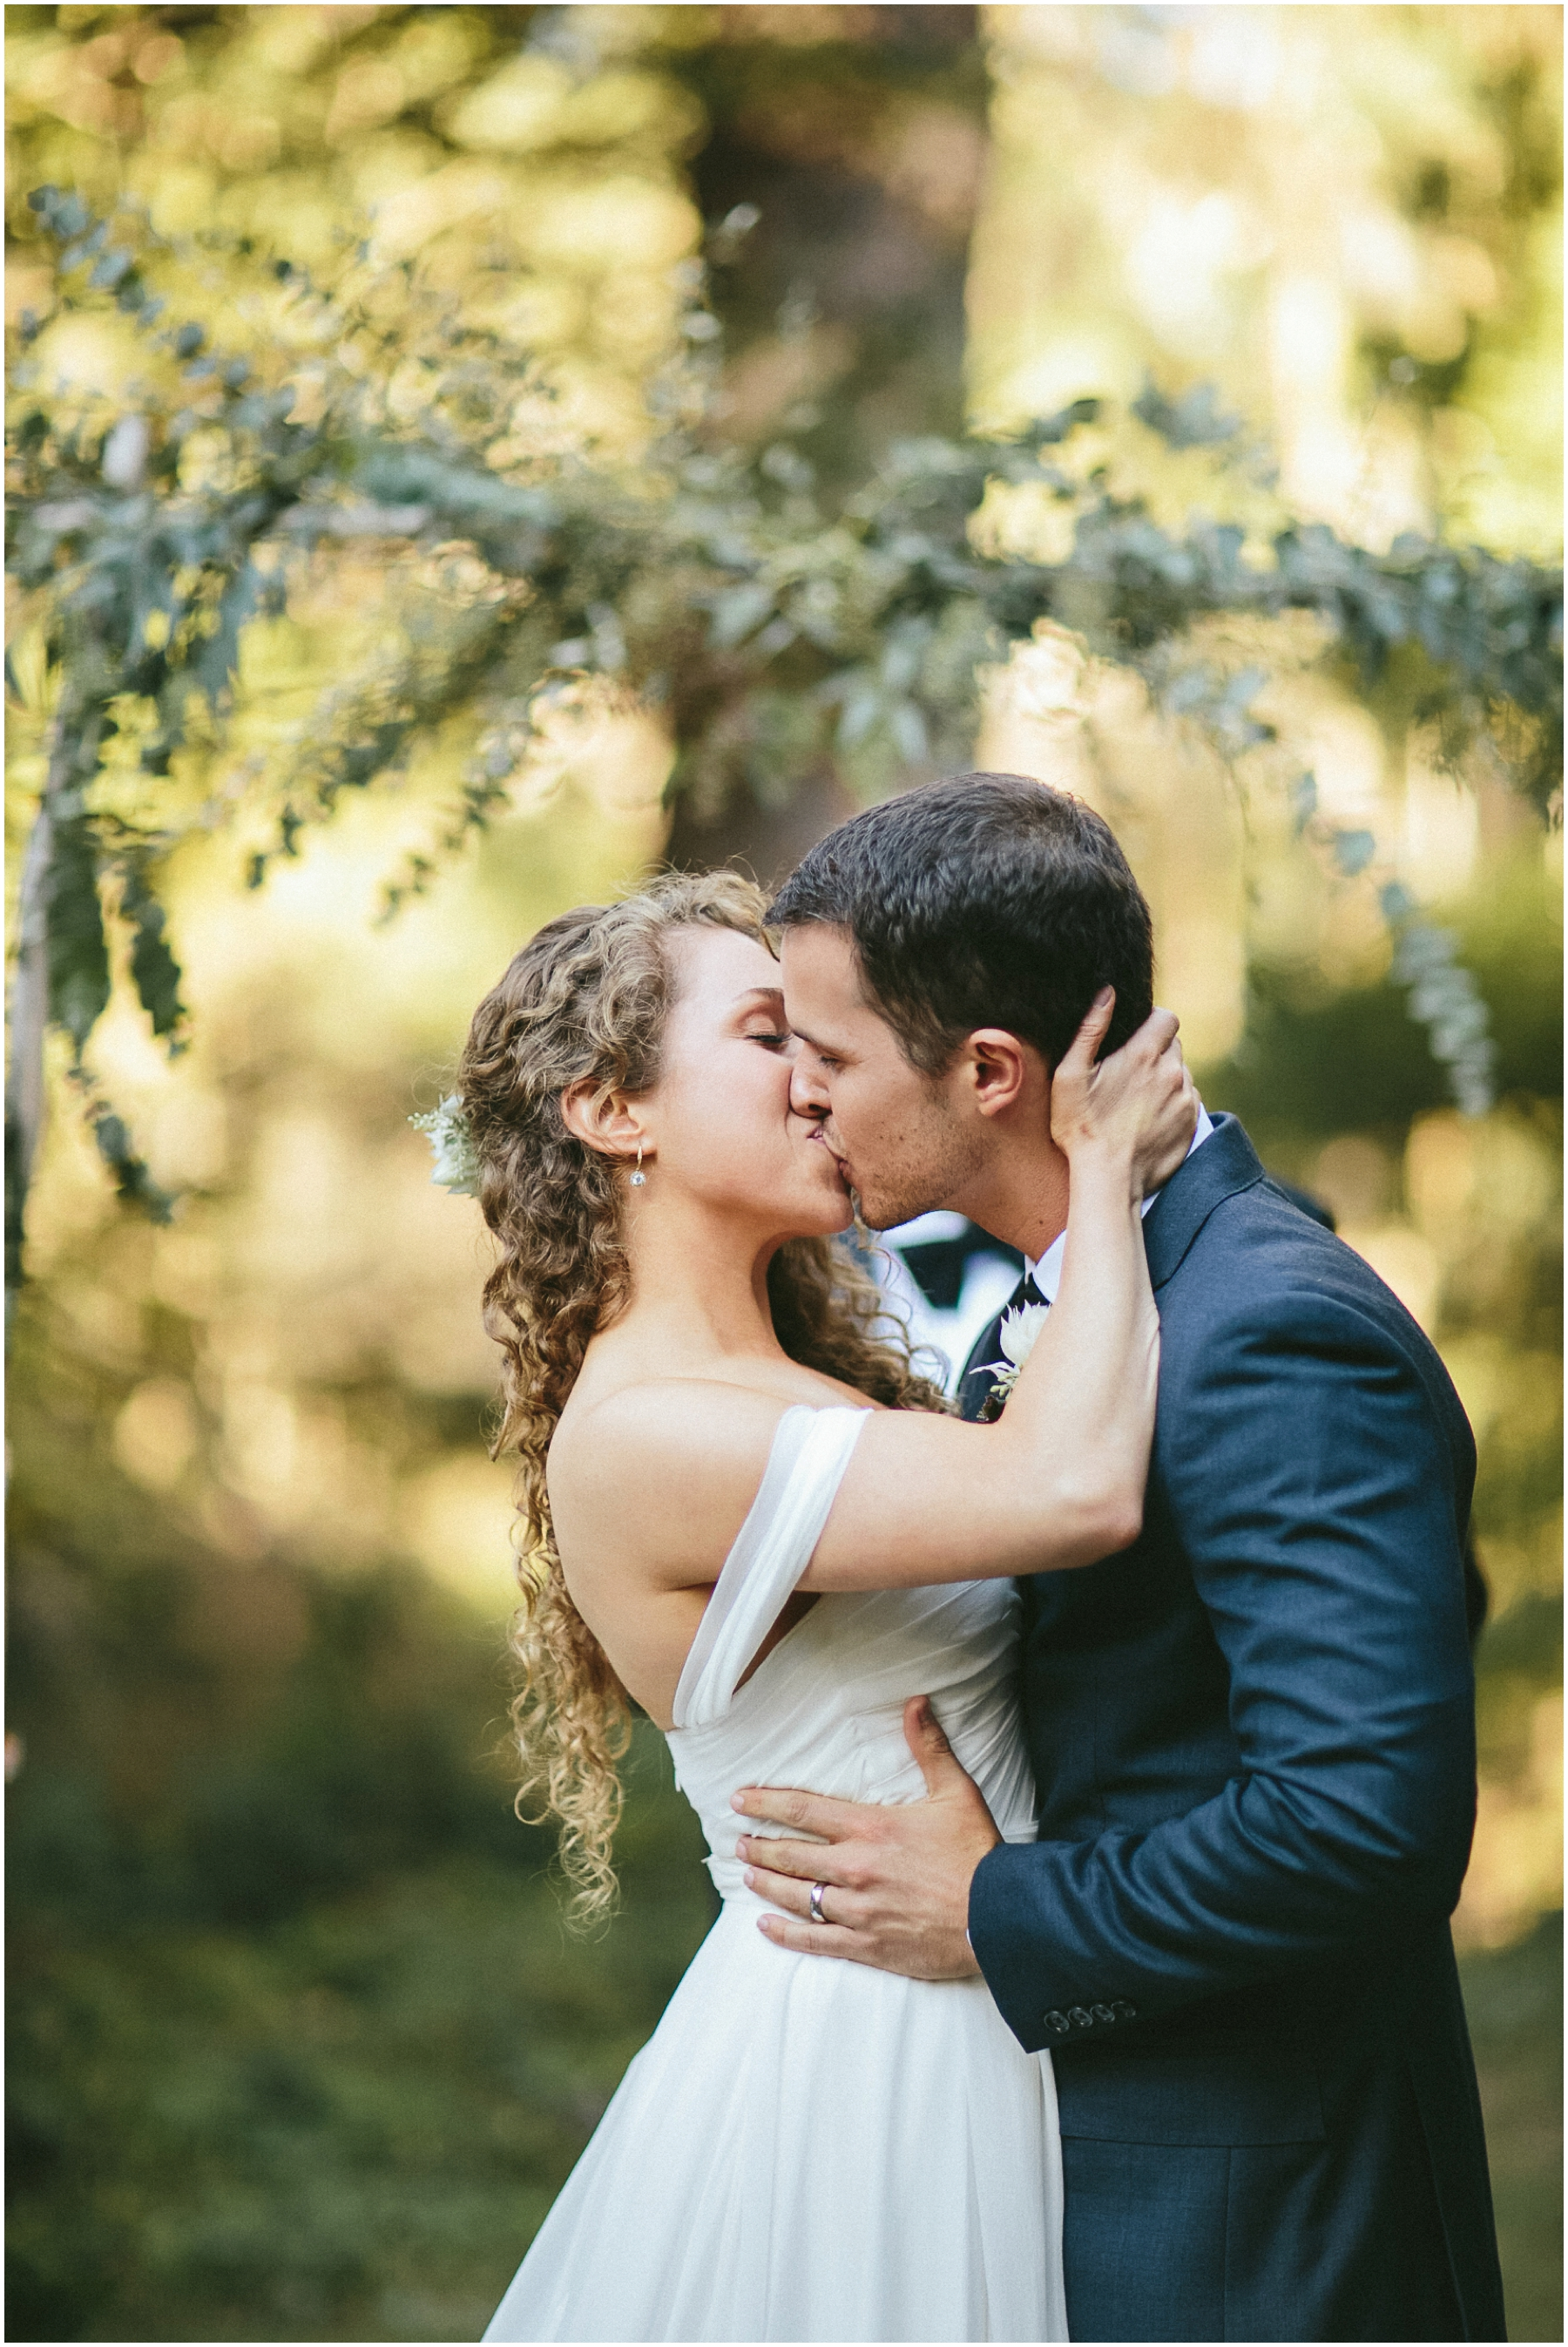 Emily+Paul-WEDDING_KellyBoitanoPhotography_0093